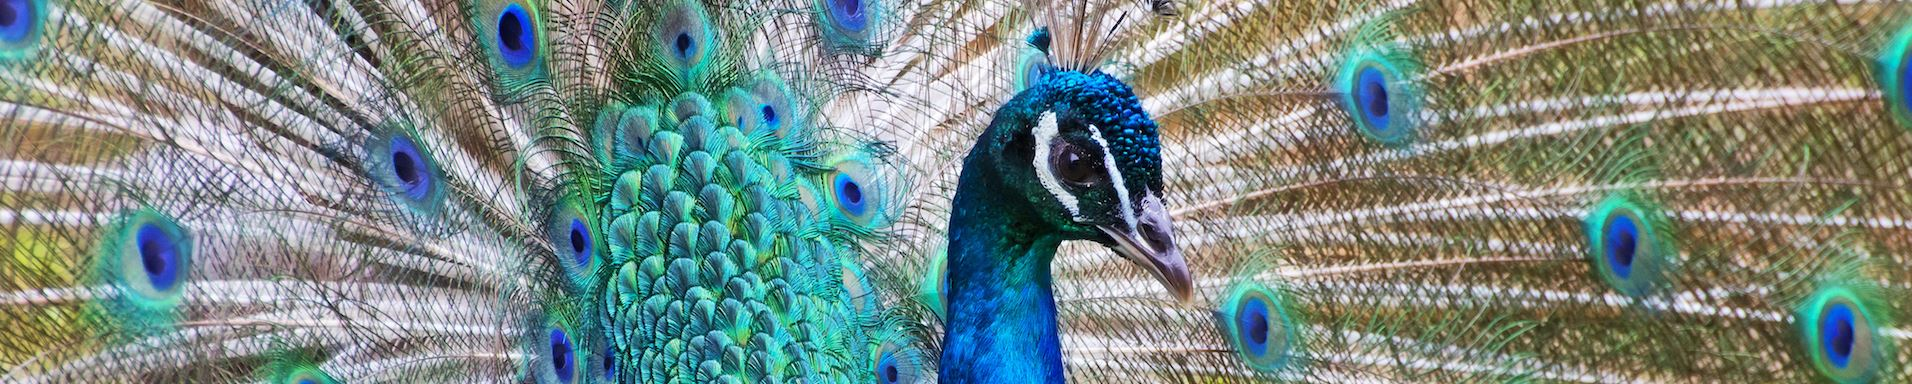 peacock with beautiful plumage